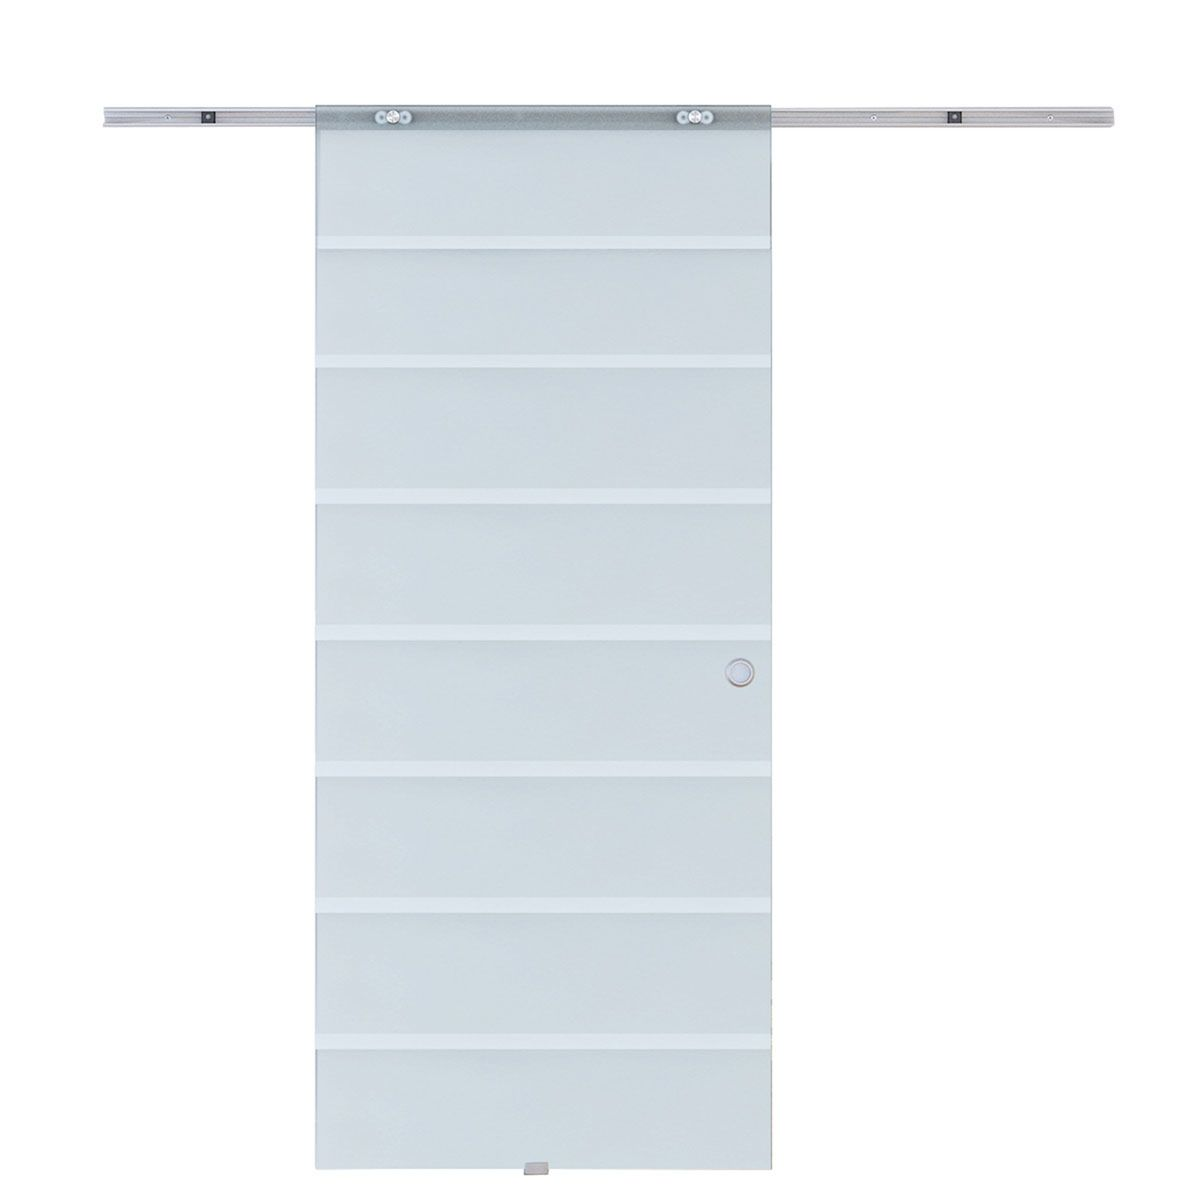 HOMCOM 6.7ft Frosted Tempered Glass Sliding Door with Track